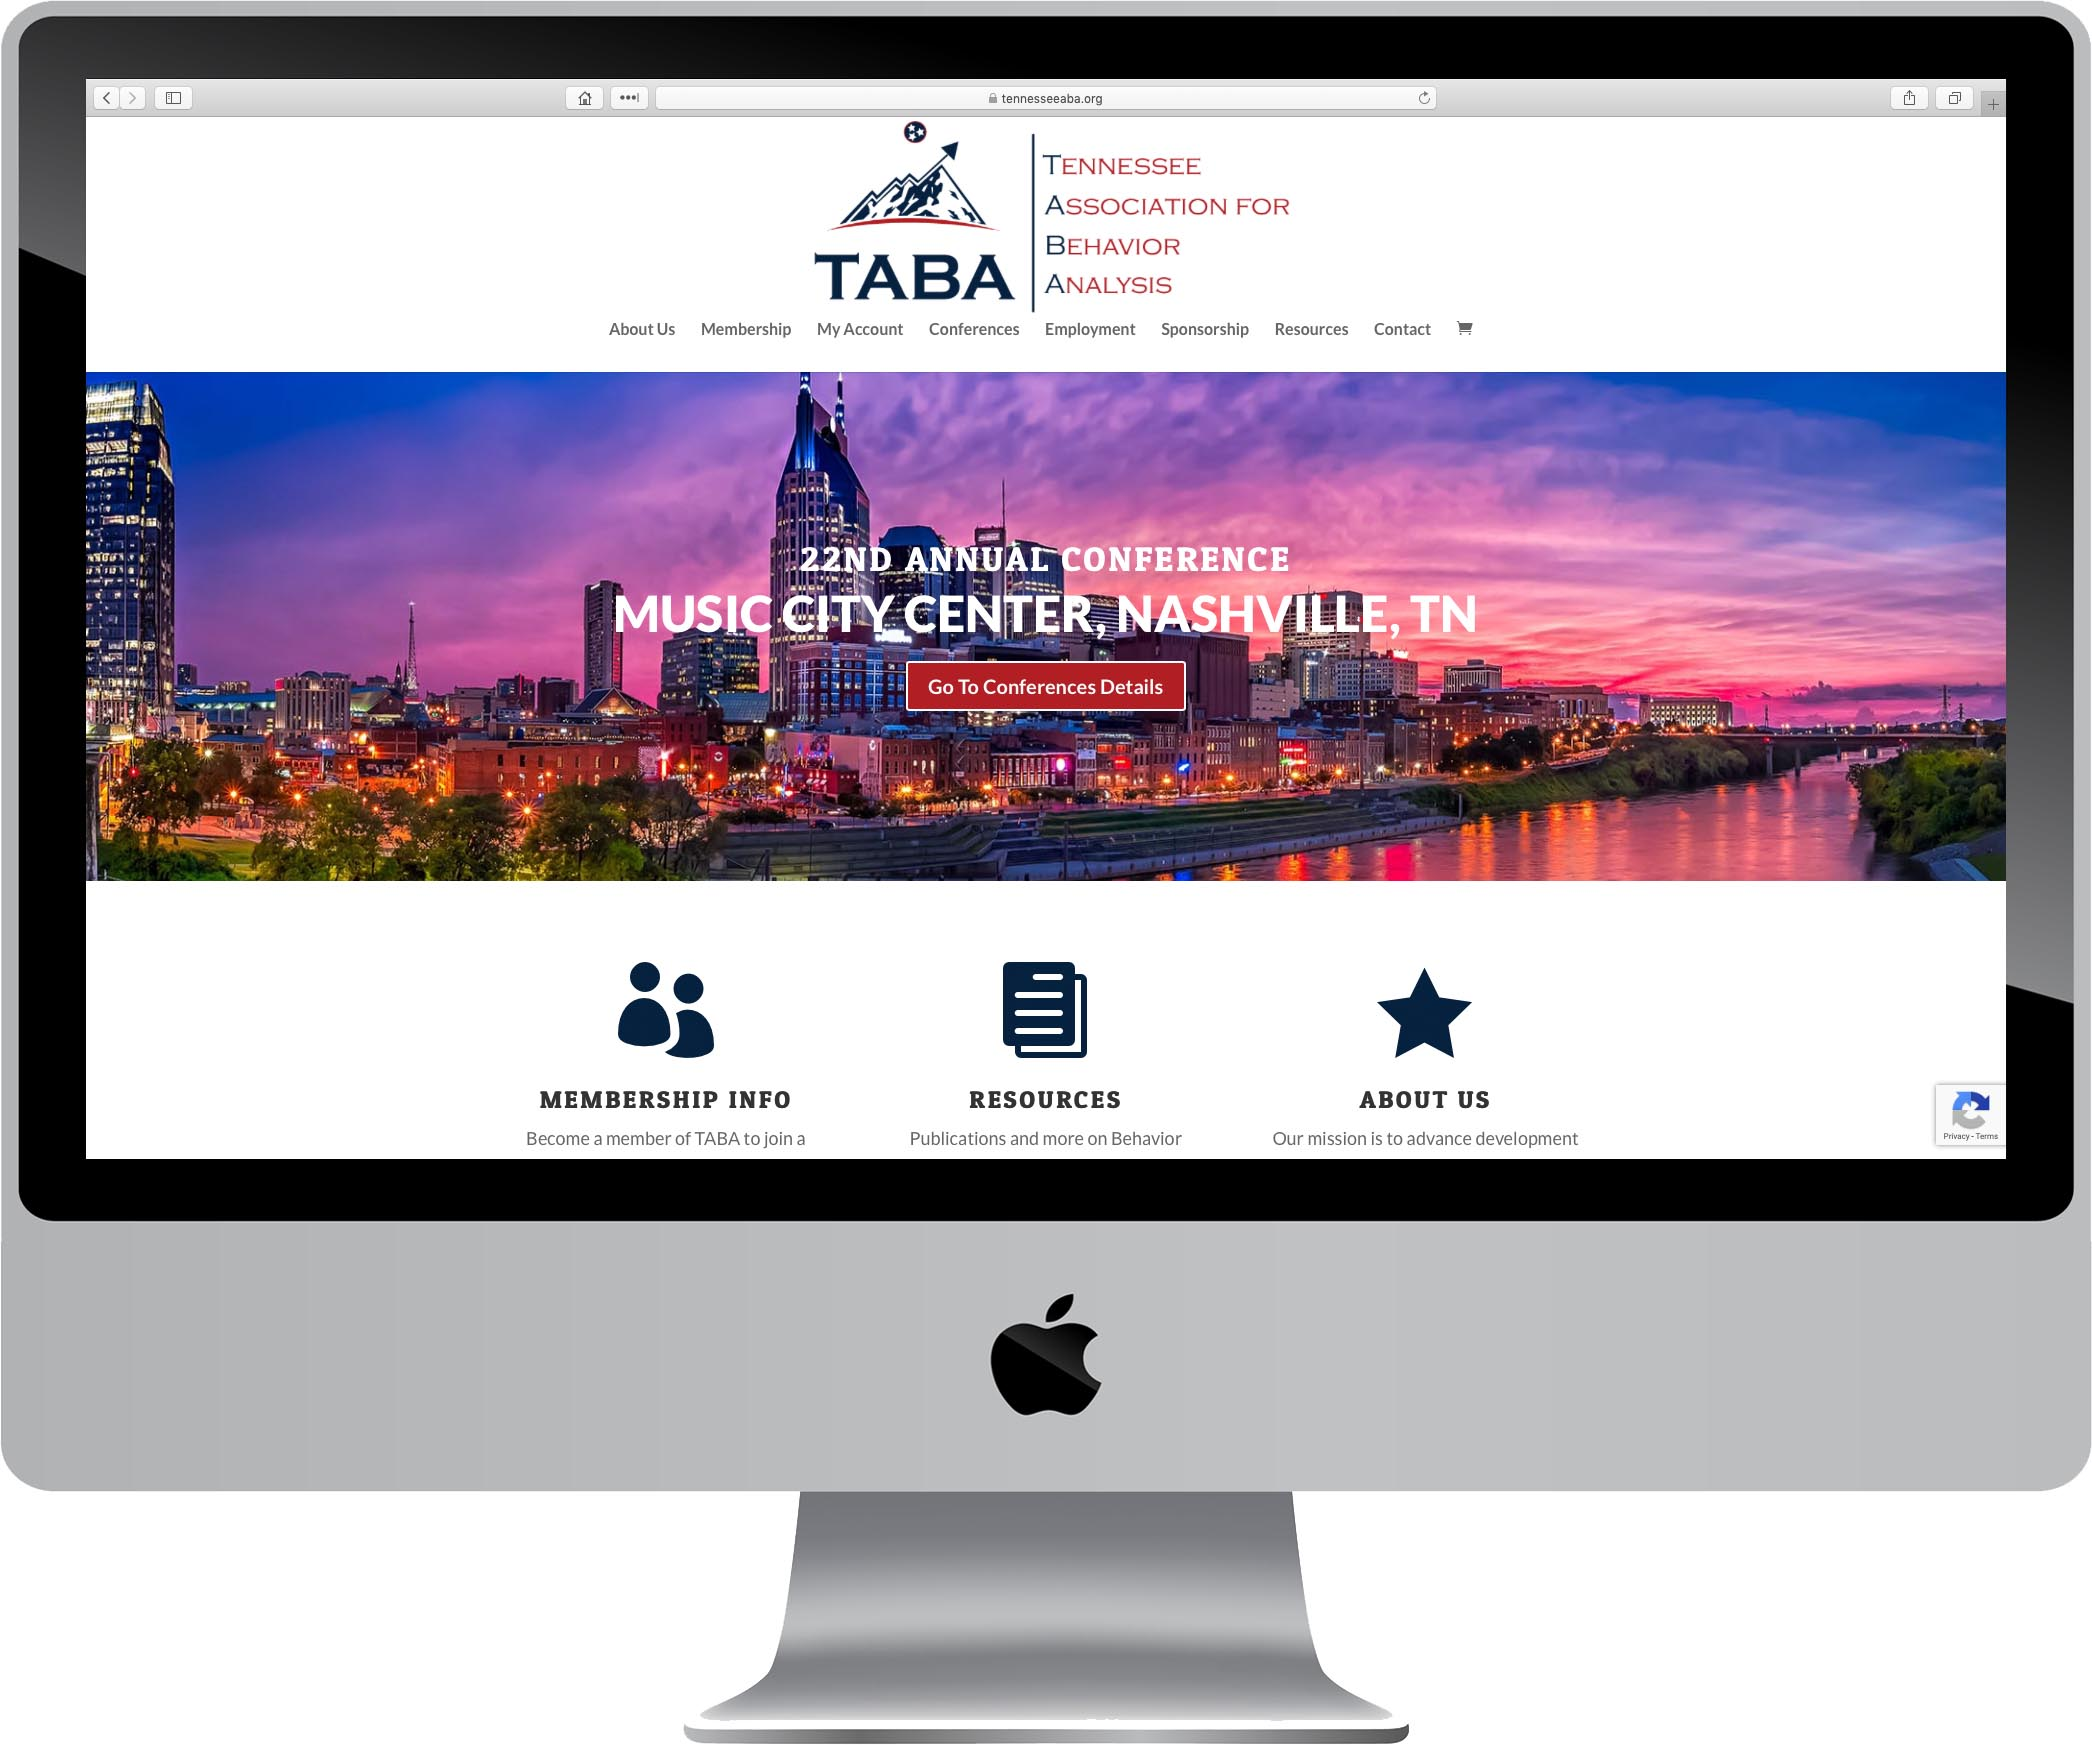 Tennessee Association for Behavior Analysis Website Design